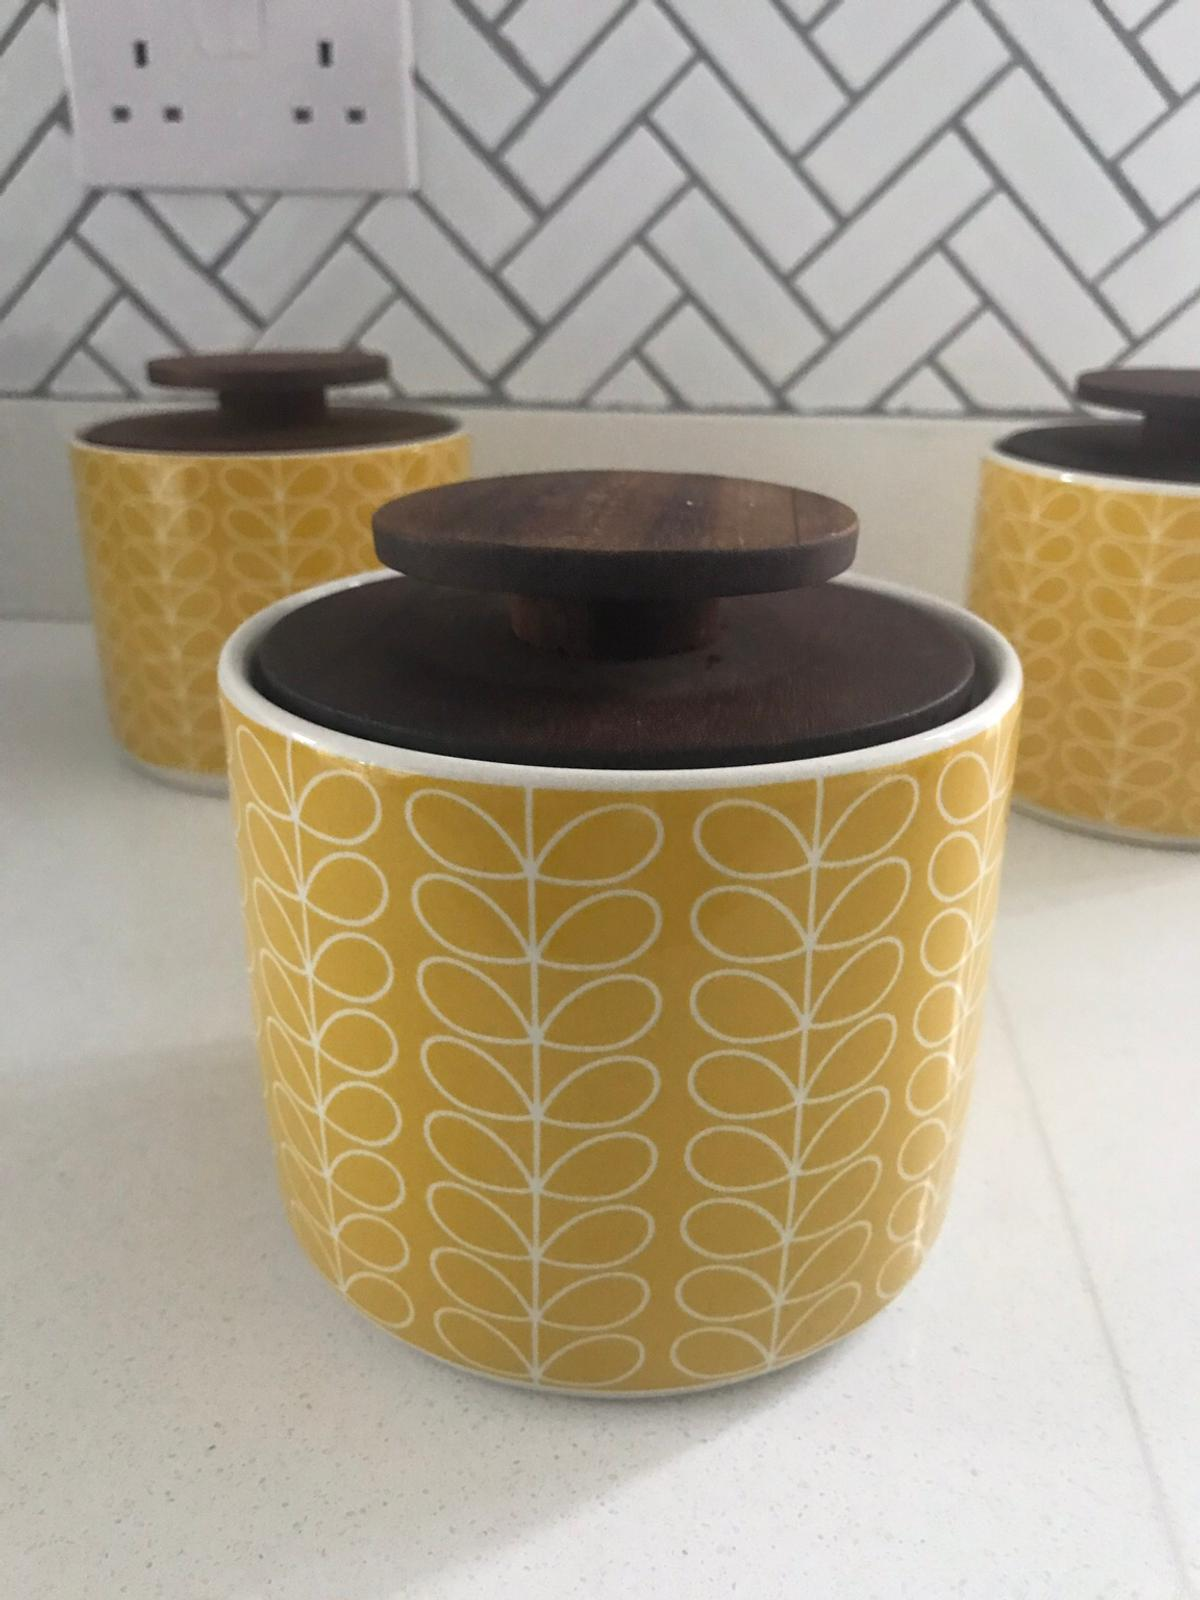 John Lewis Orla Kiely Ceramic Jars In De3 Derby For 2000